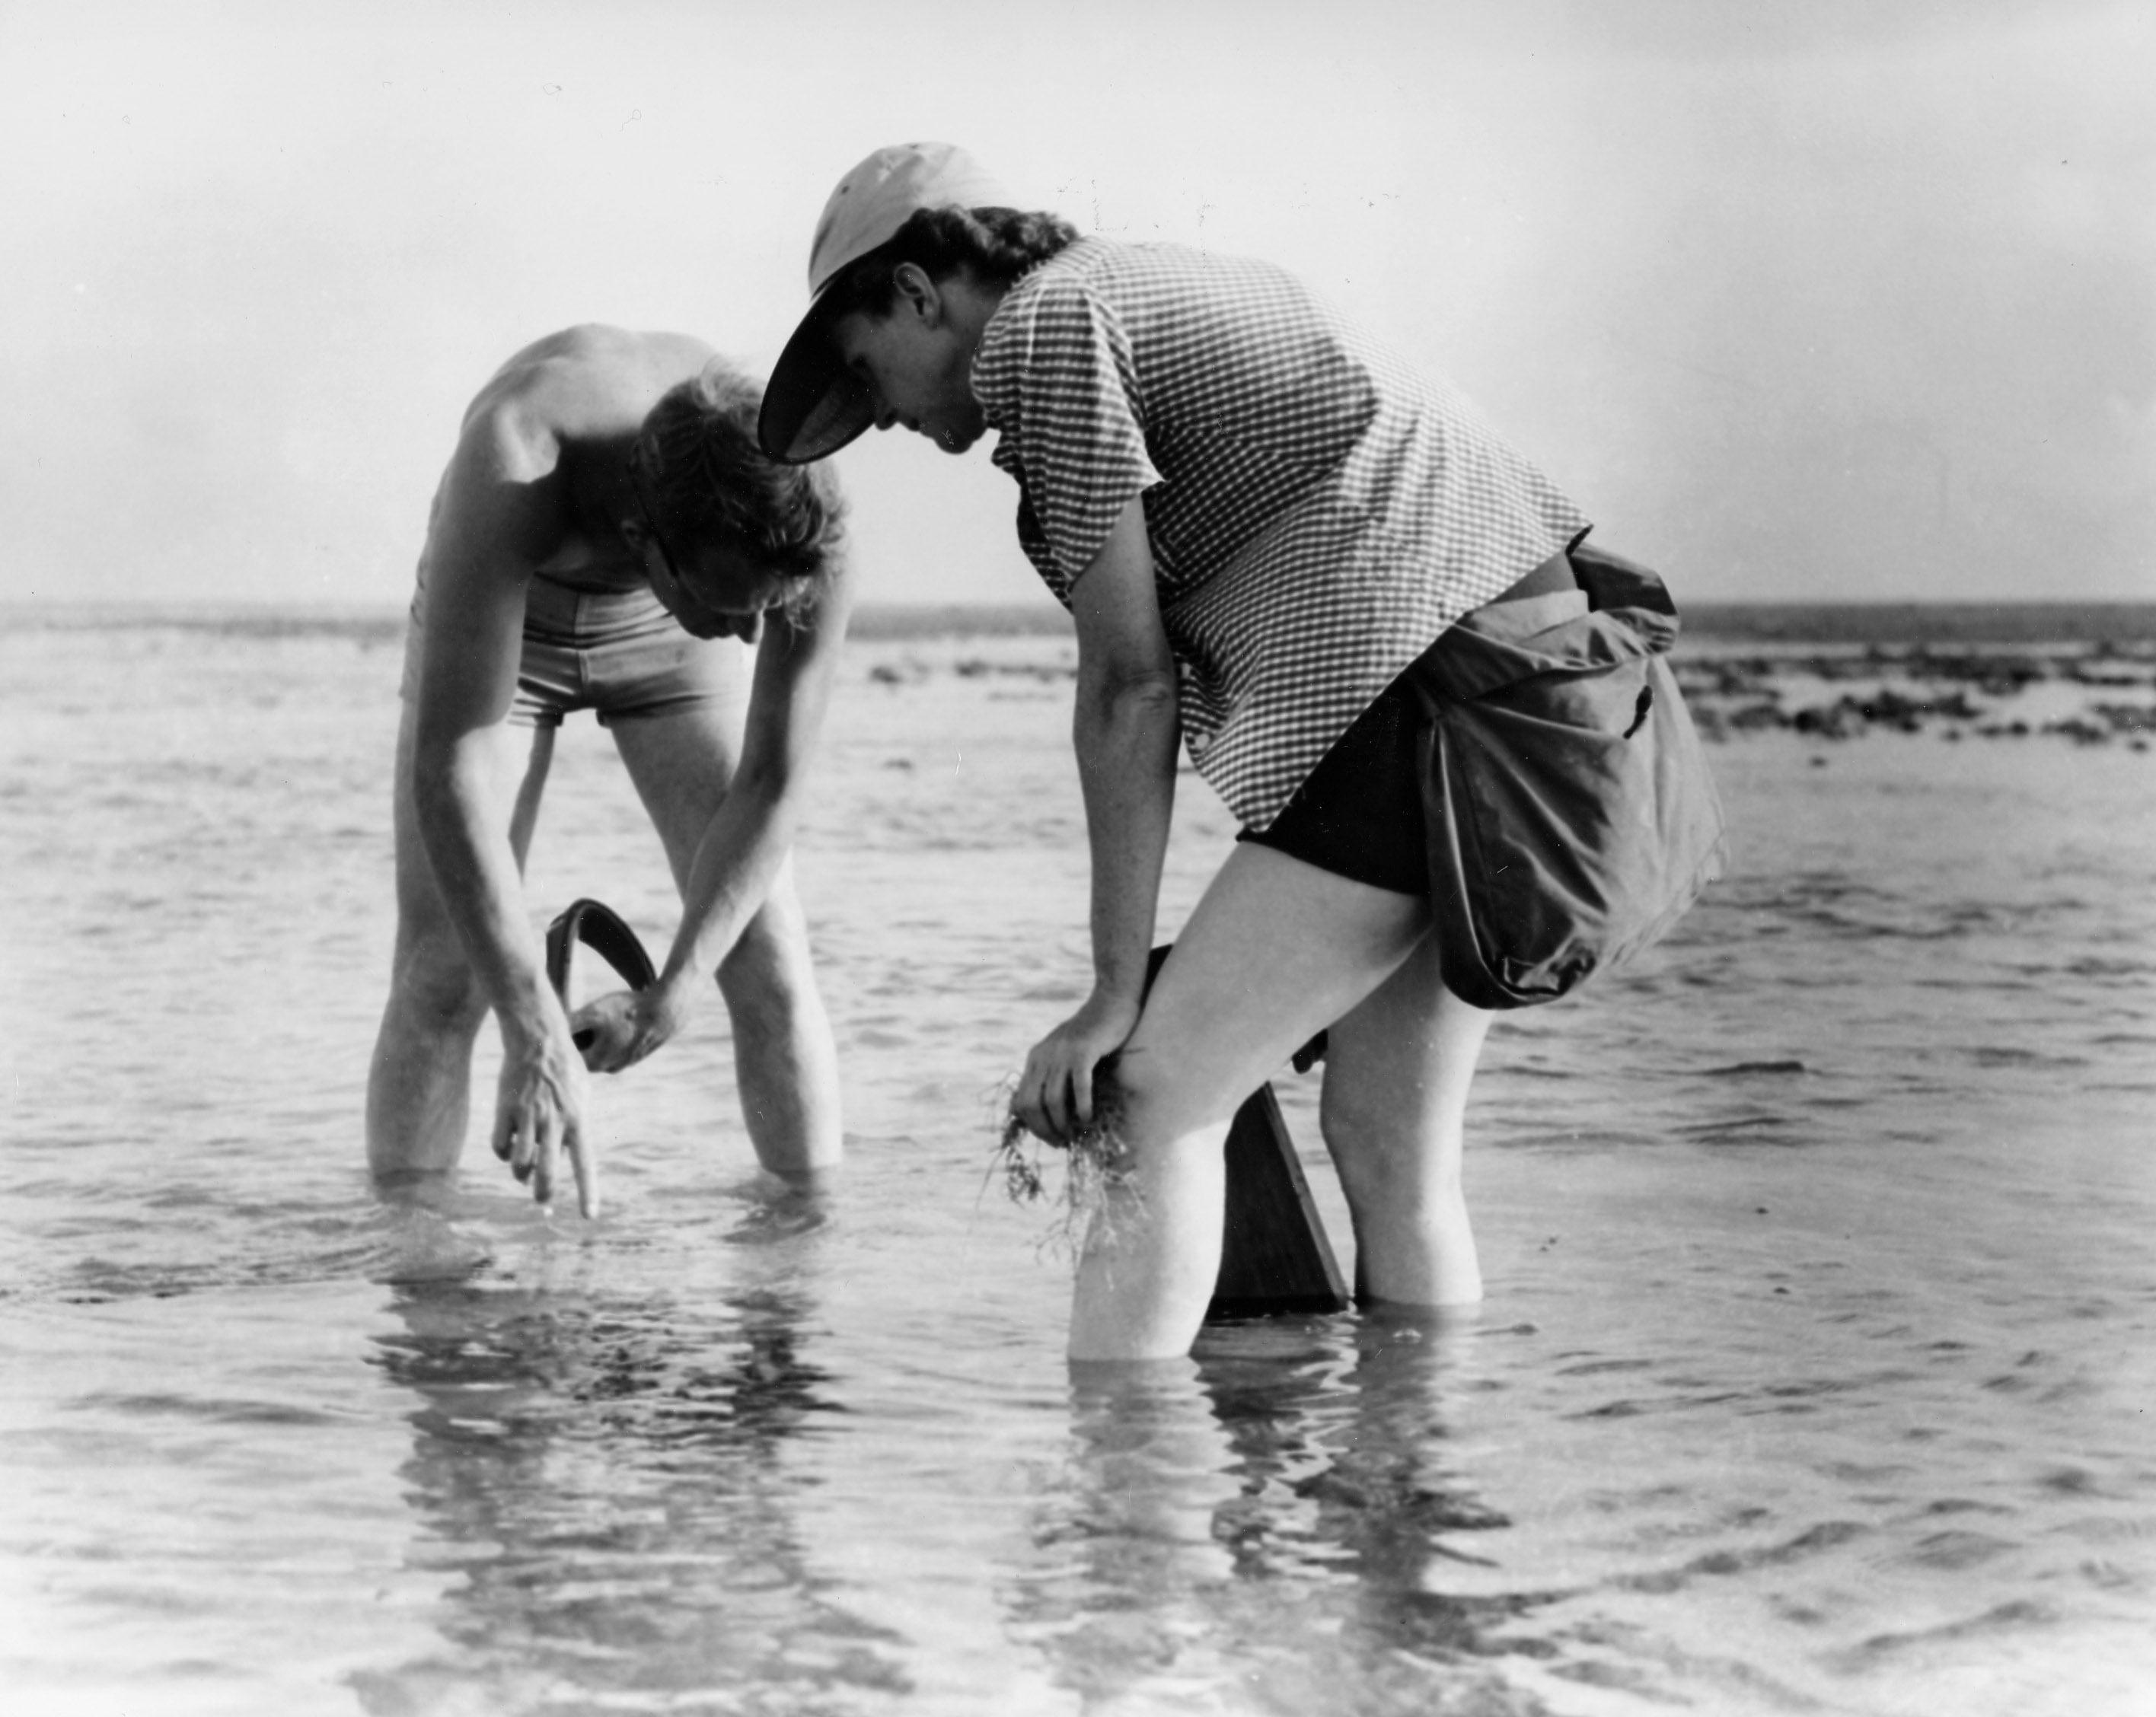 Conducting Marine Biology Research, 1952